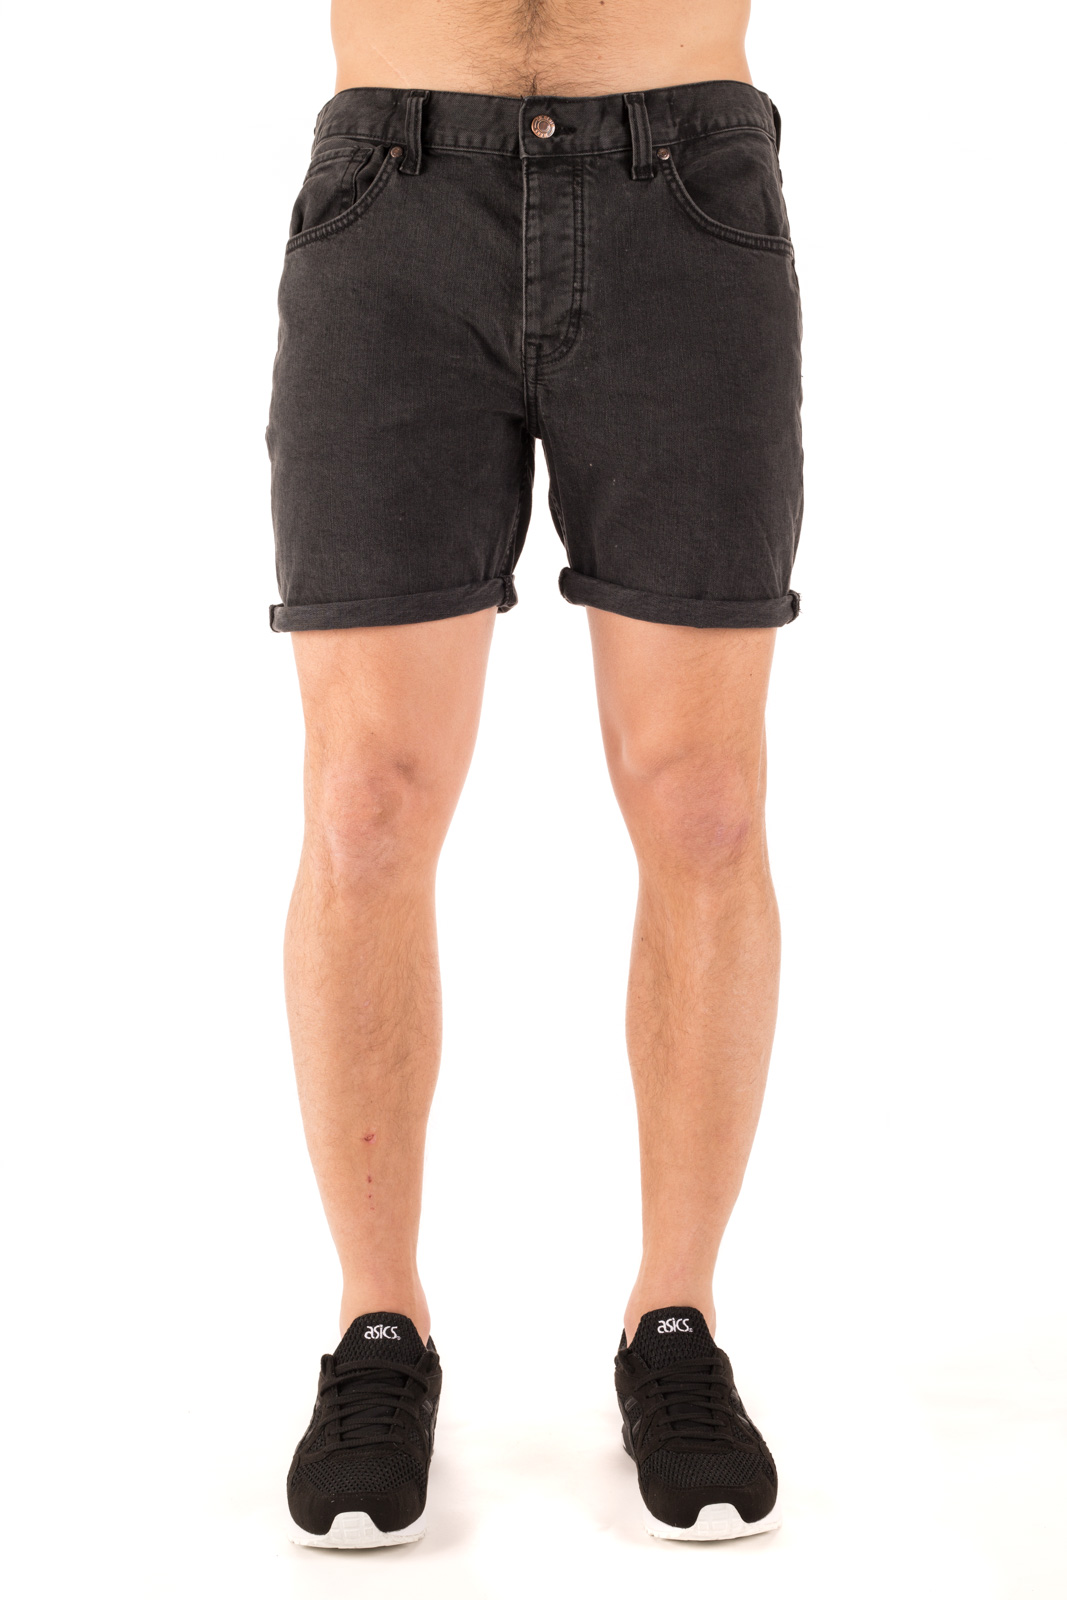 Dr. Denim - Mac Shorts nero lavato